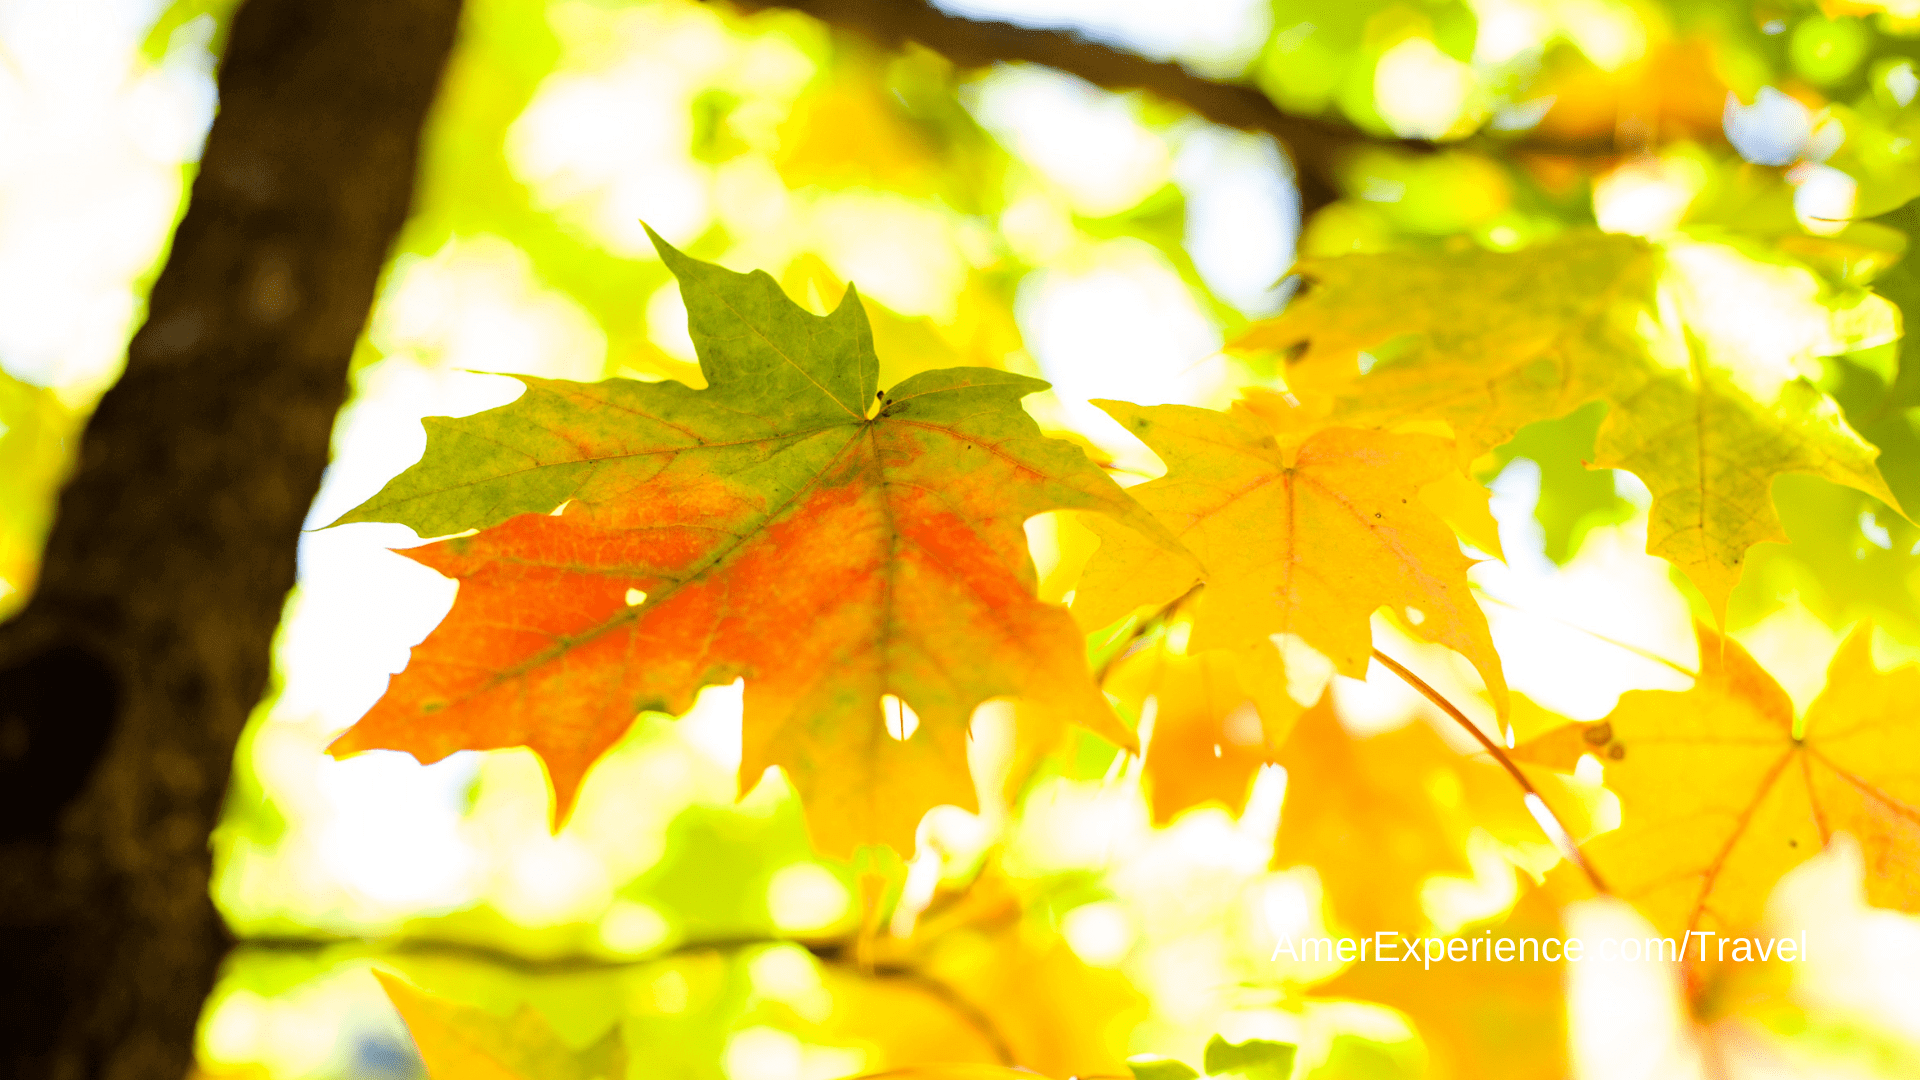 It's fall y'all, time to leaf peep: Your foliage forecast for 2021, according to an expert